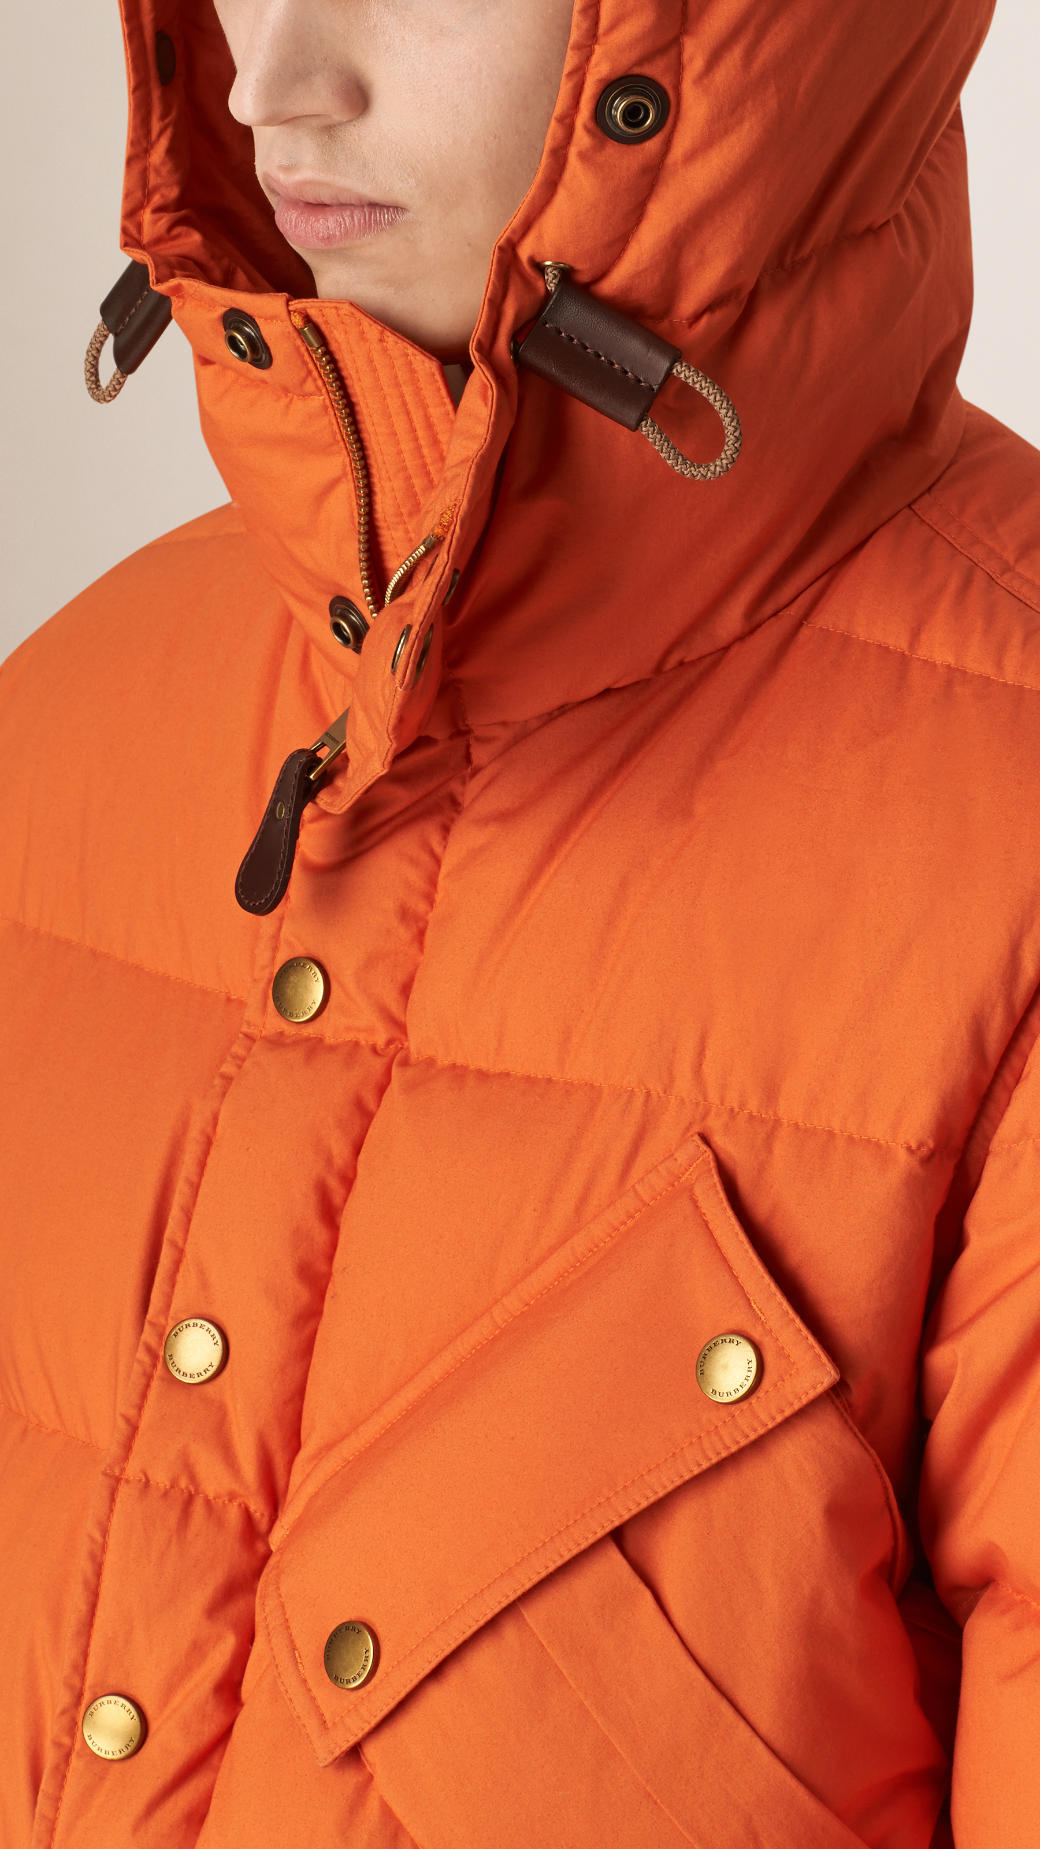 Burberry Down-filled Puffer Jacket in Orange Saffron (Orange) for Men